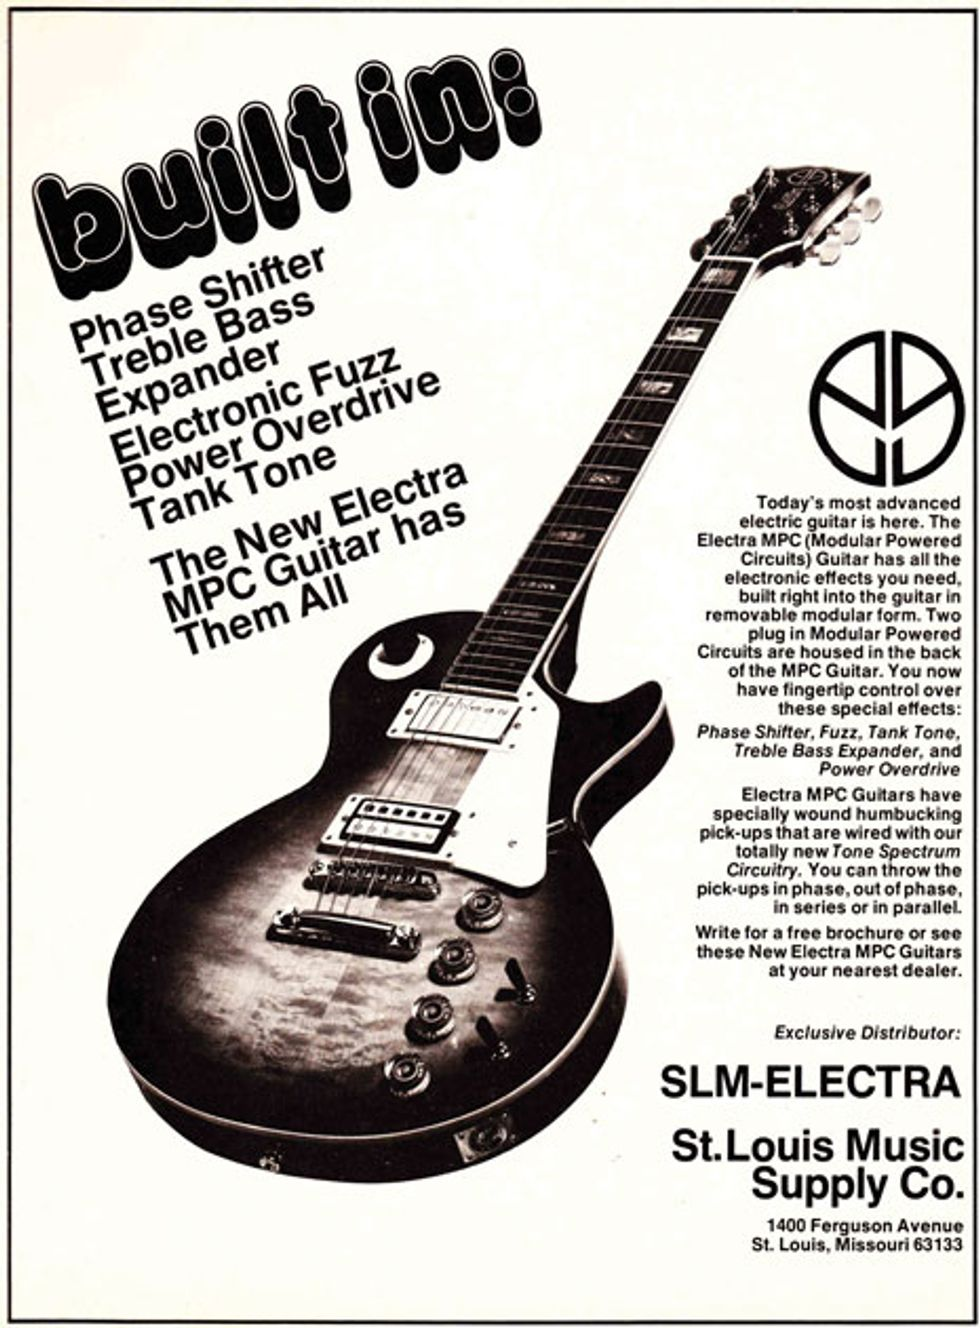 Build your own stompbox premier guitar photo 1 the electra mpc a late 70searly 80s guitar with built in effects has been largely forgotten but many boutique builders have borrowed its solutioingenieria Images